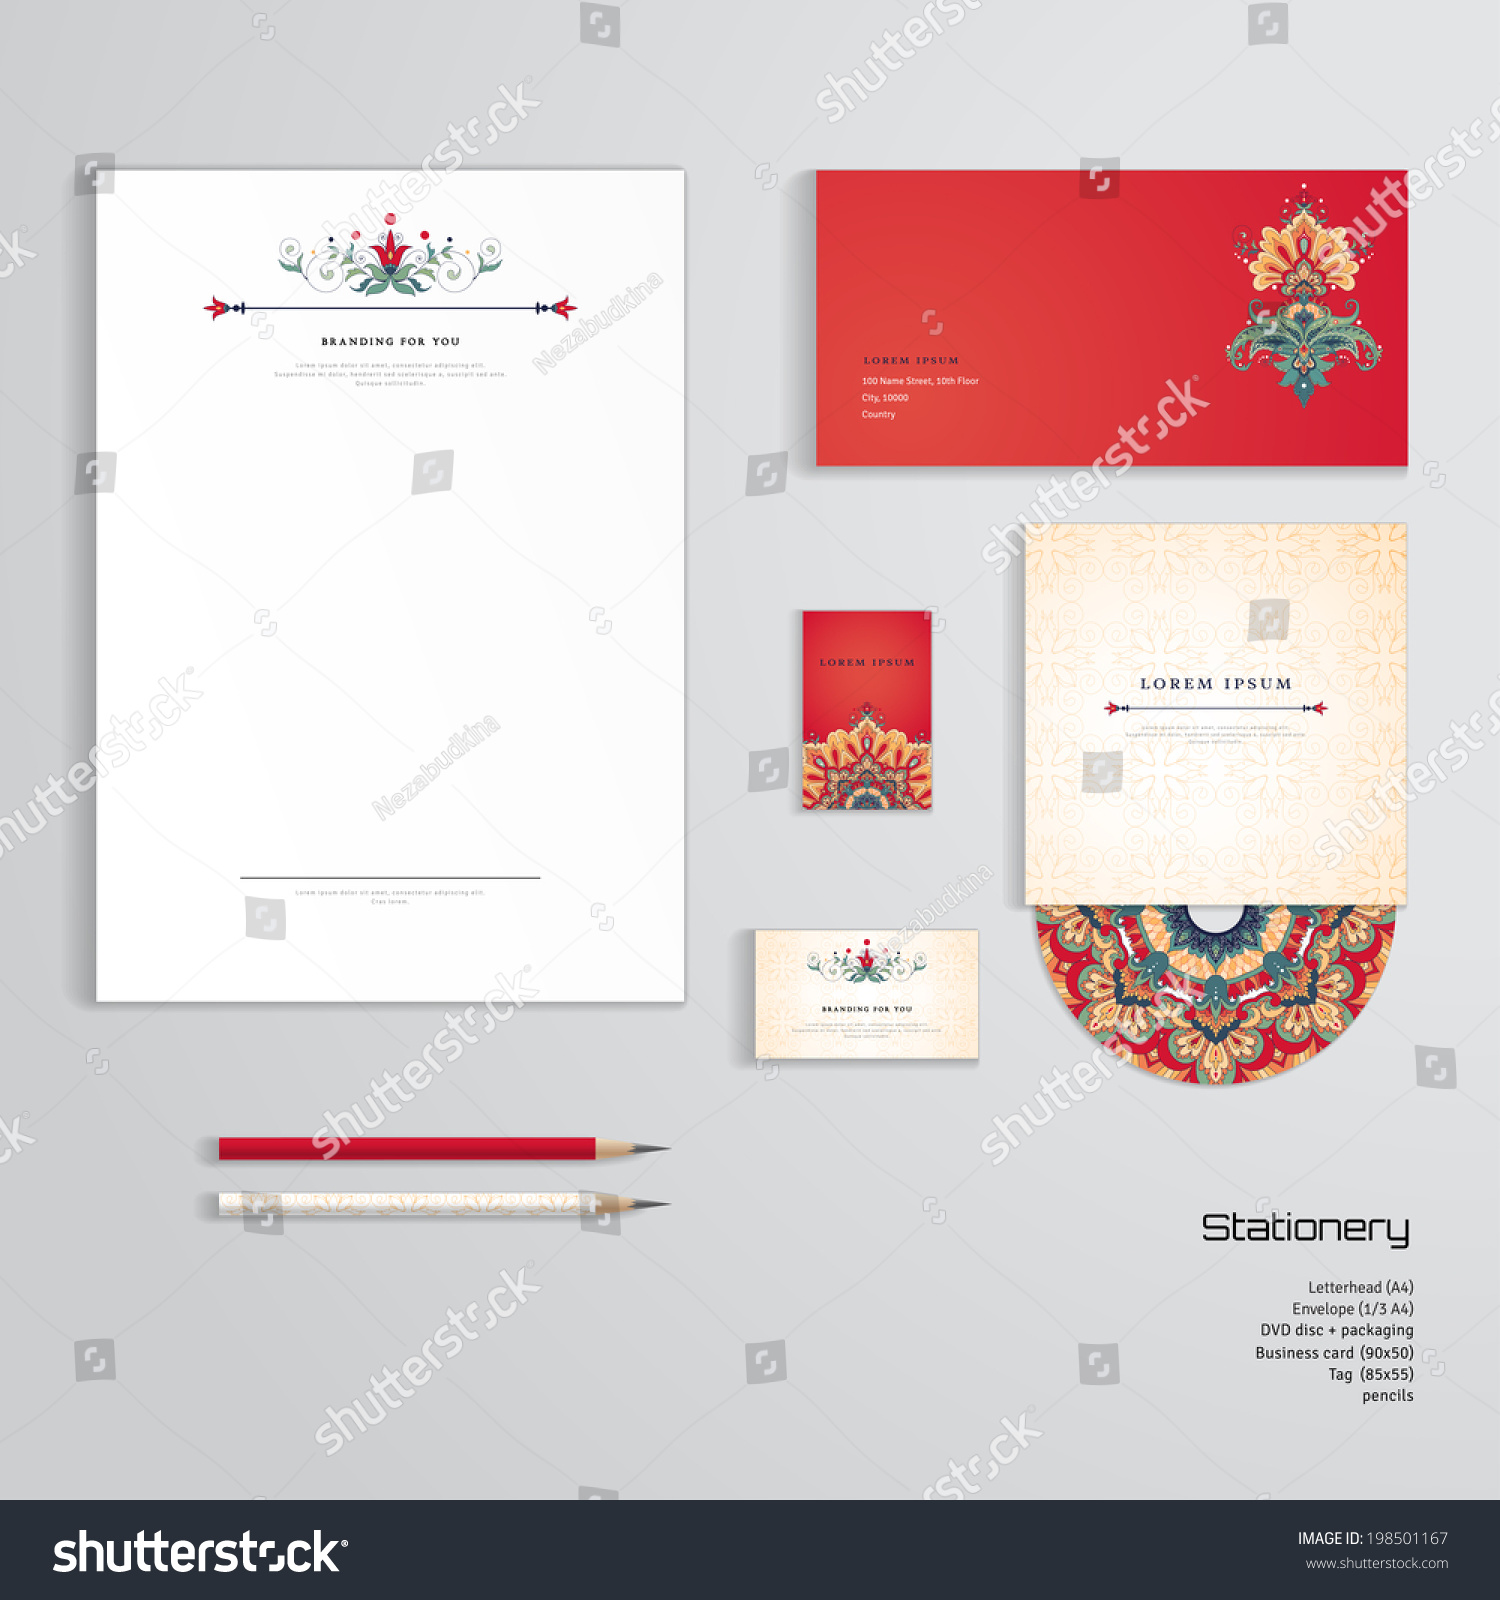 Vector identity templates letterhead envelope business stock vector vector identity templates letterhead envelope business card tag disc with packaging friedricerecipe Image collections